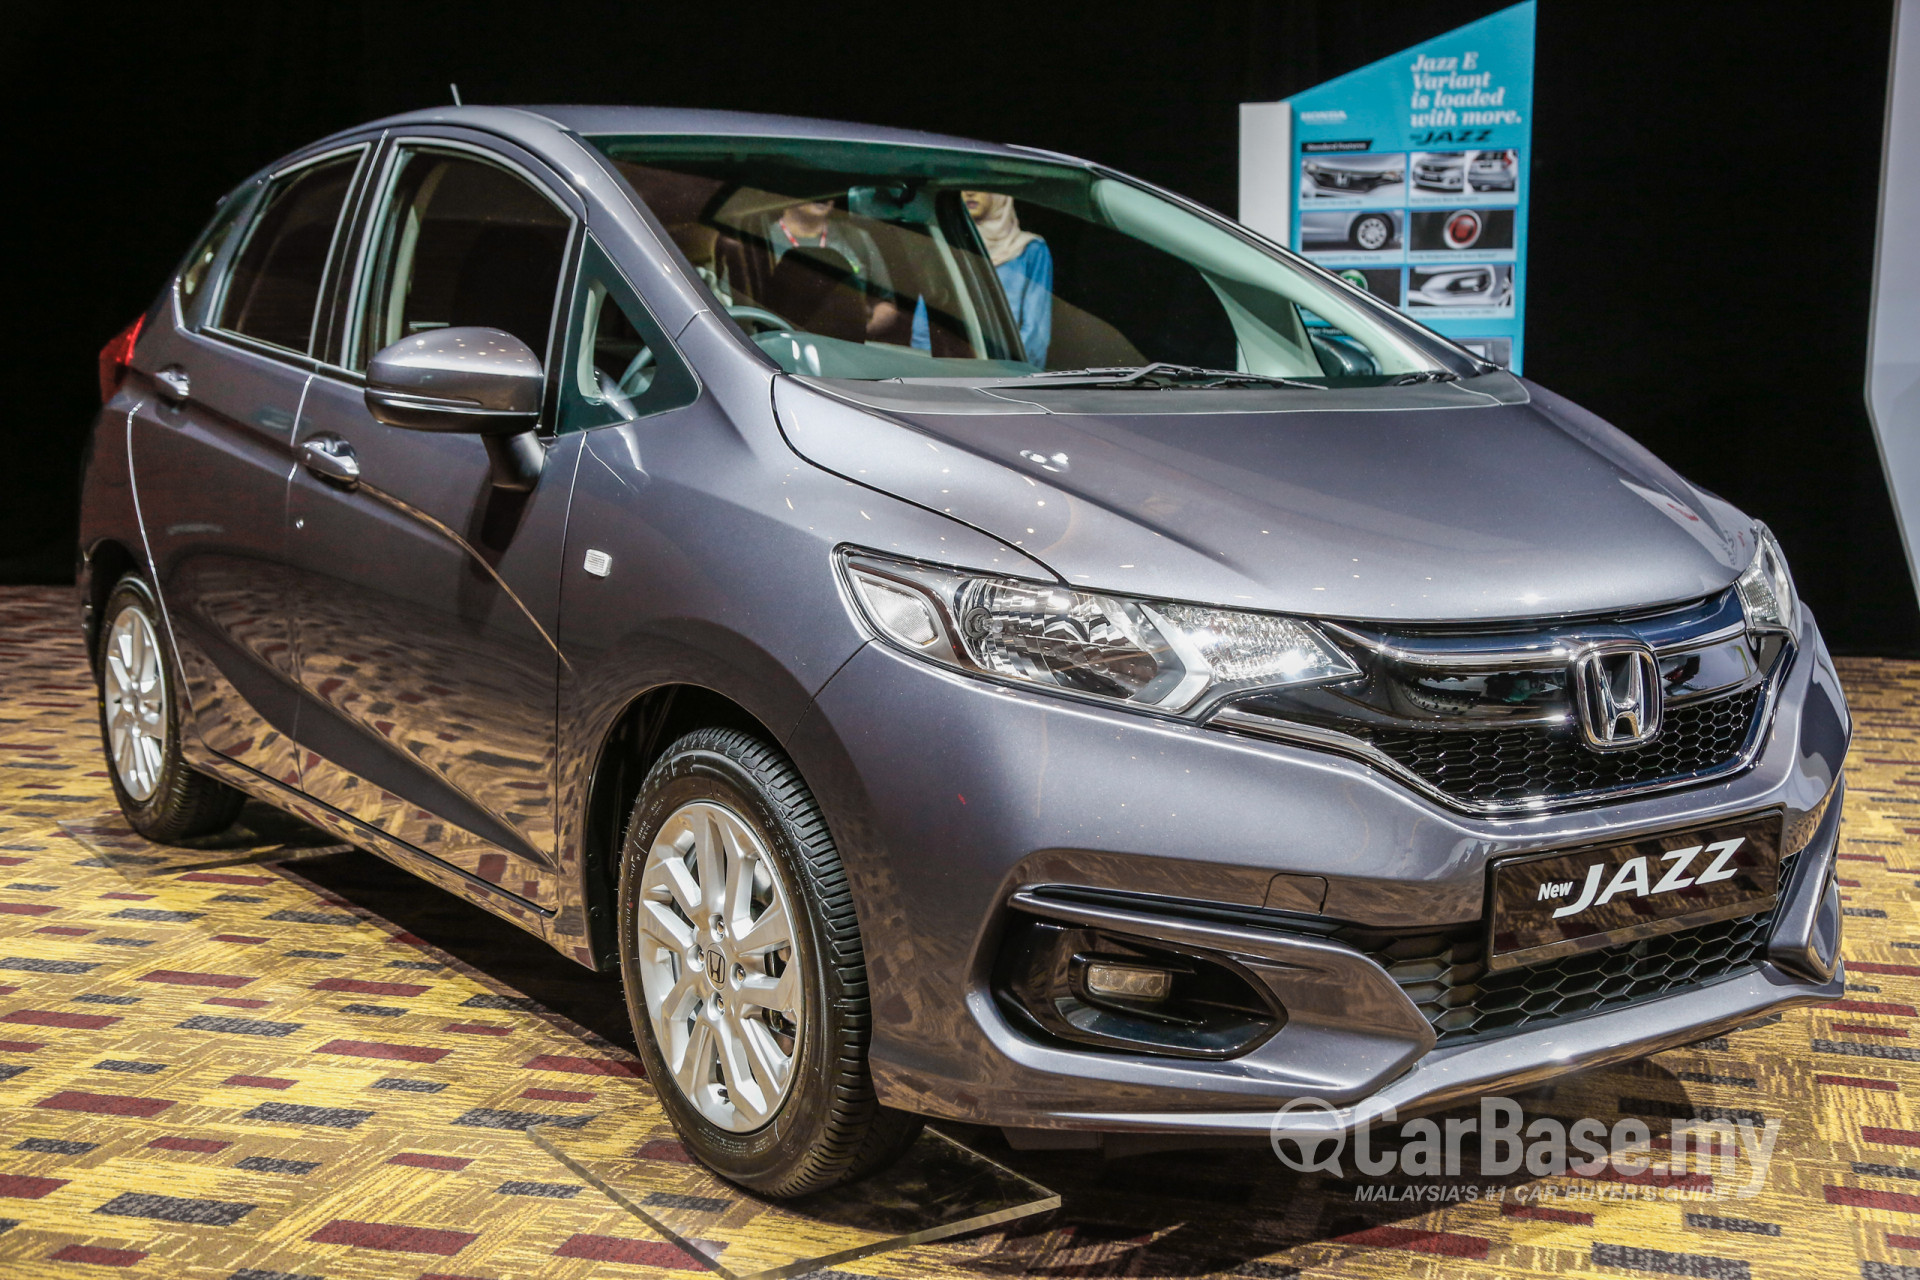 honda jazz mk3 facelift 2017 exterior image 39261 in malaysia reviews specs prices. Black Bedroom Furniture Sets. Home Design Ideas